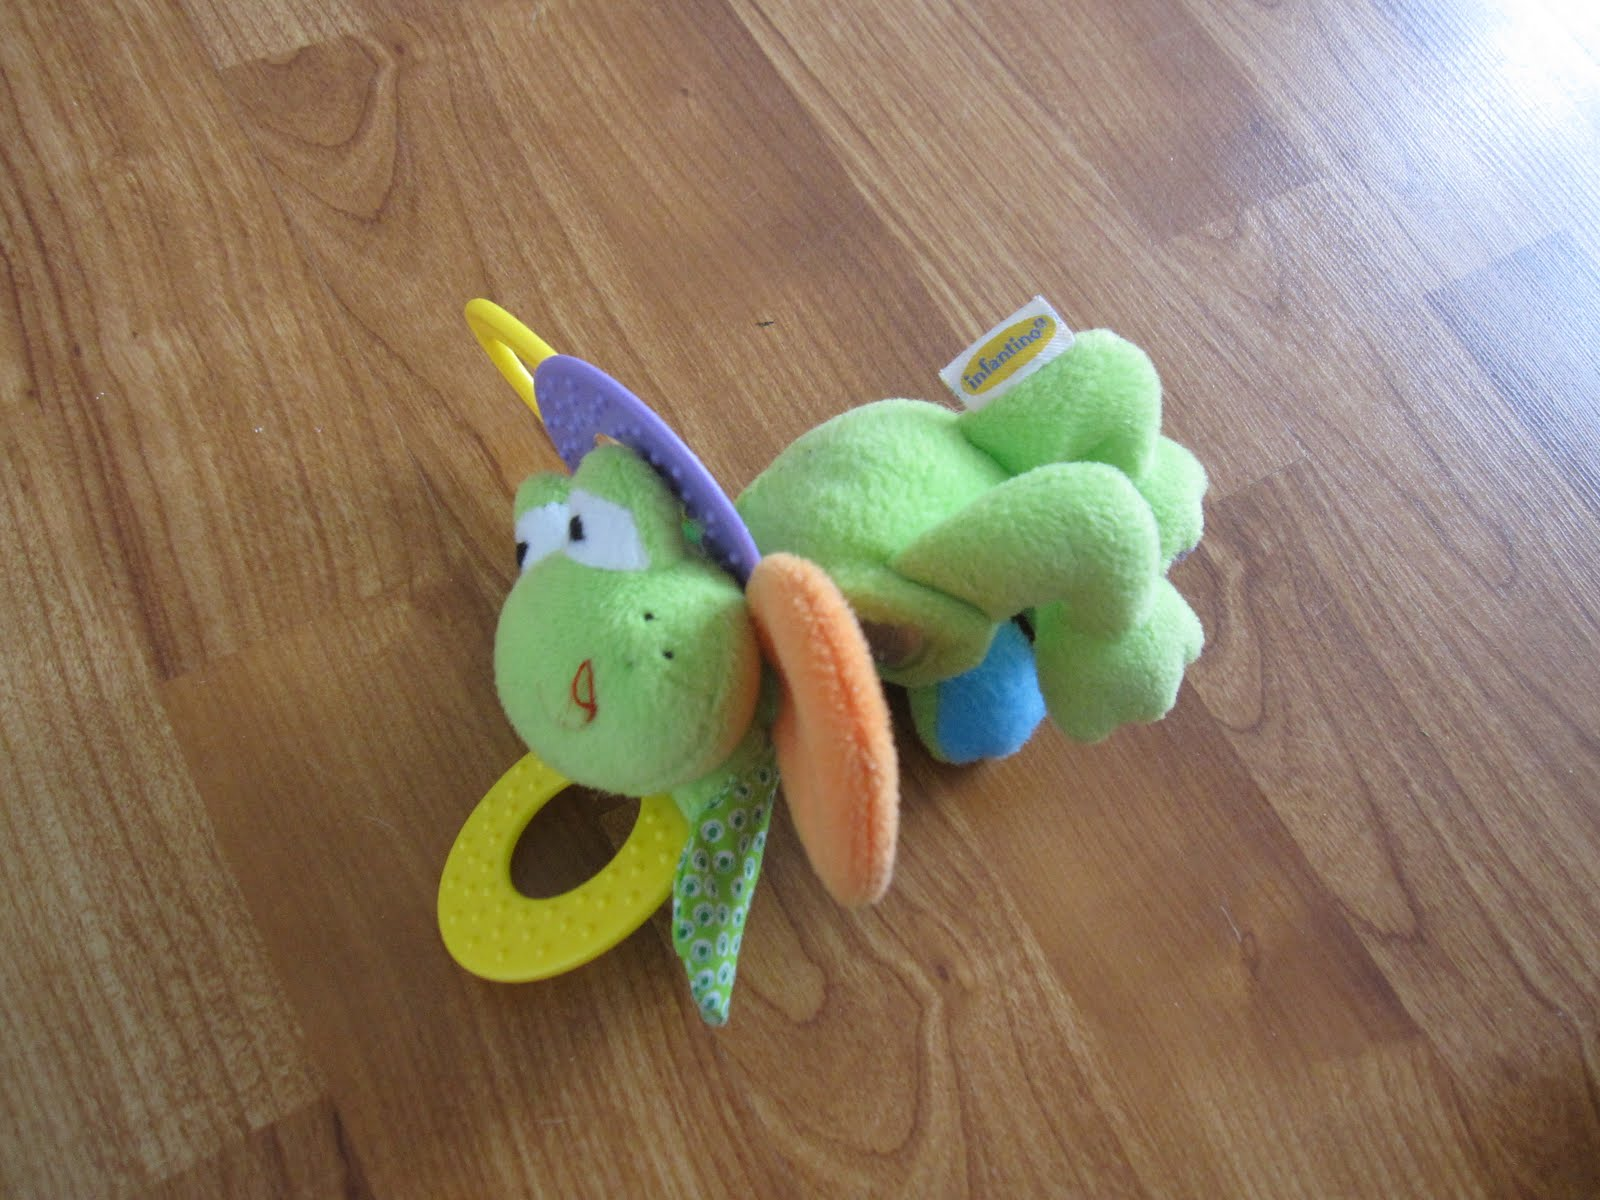 MOVING SALE - BABY GEAR/TOYS: INFANTINO FROG BABY RATTLE - $2